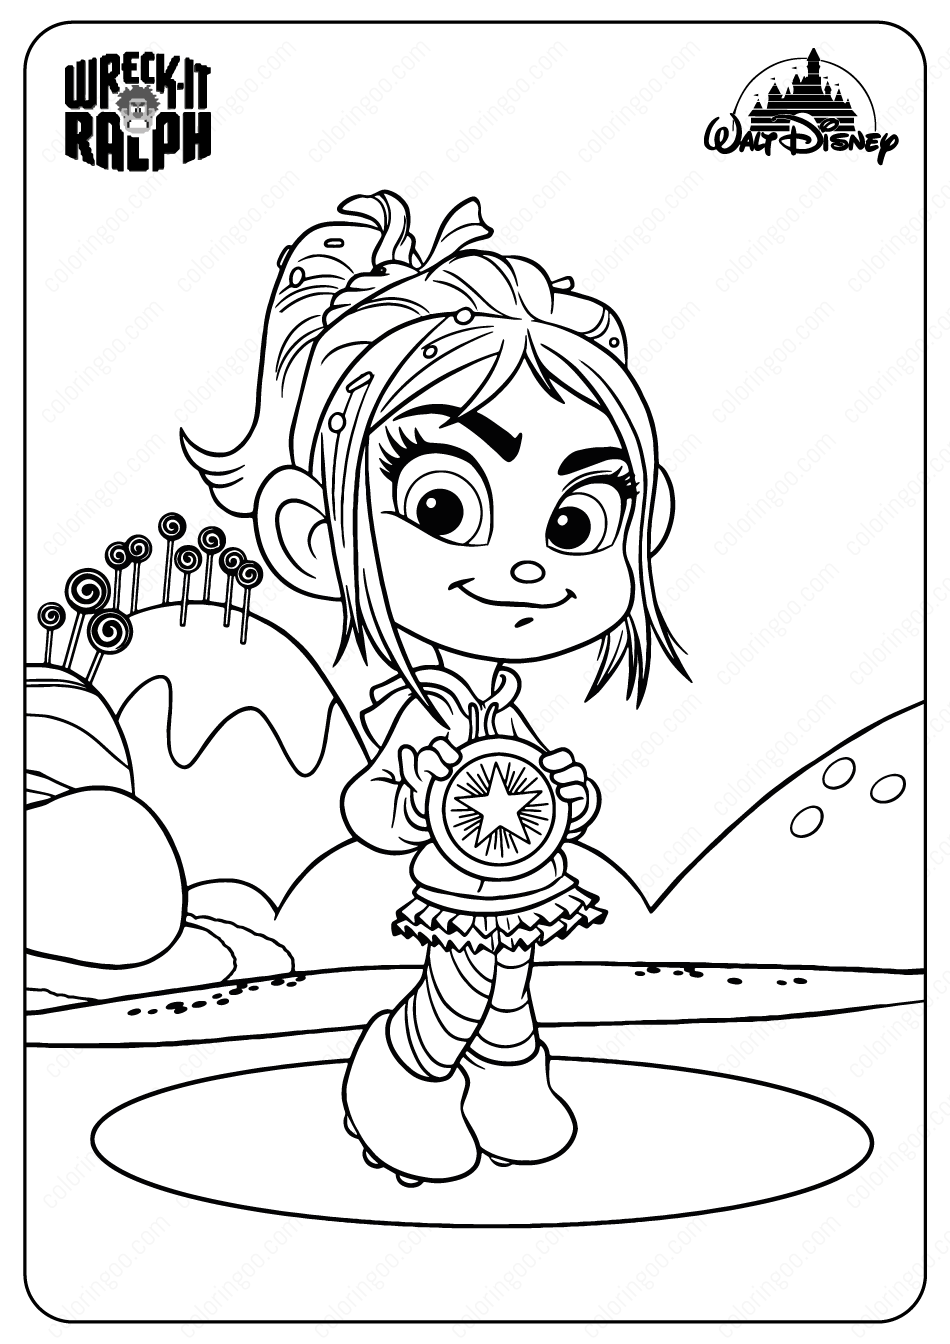 Disney Wreck It Ralph Vanellope Coloring Pages